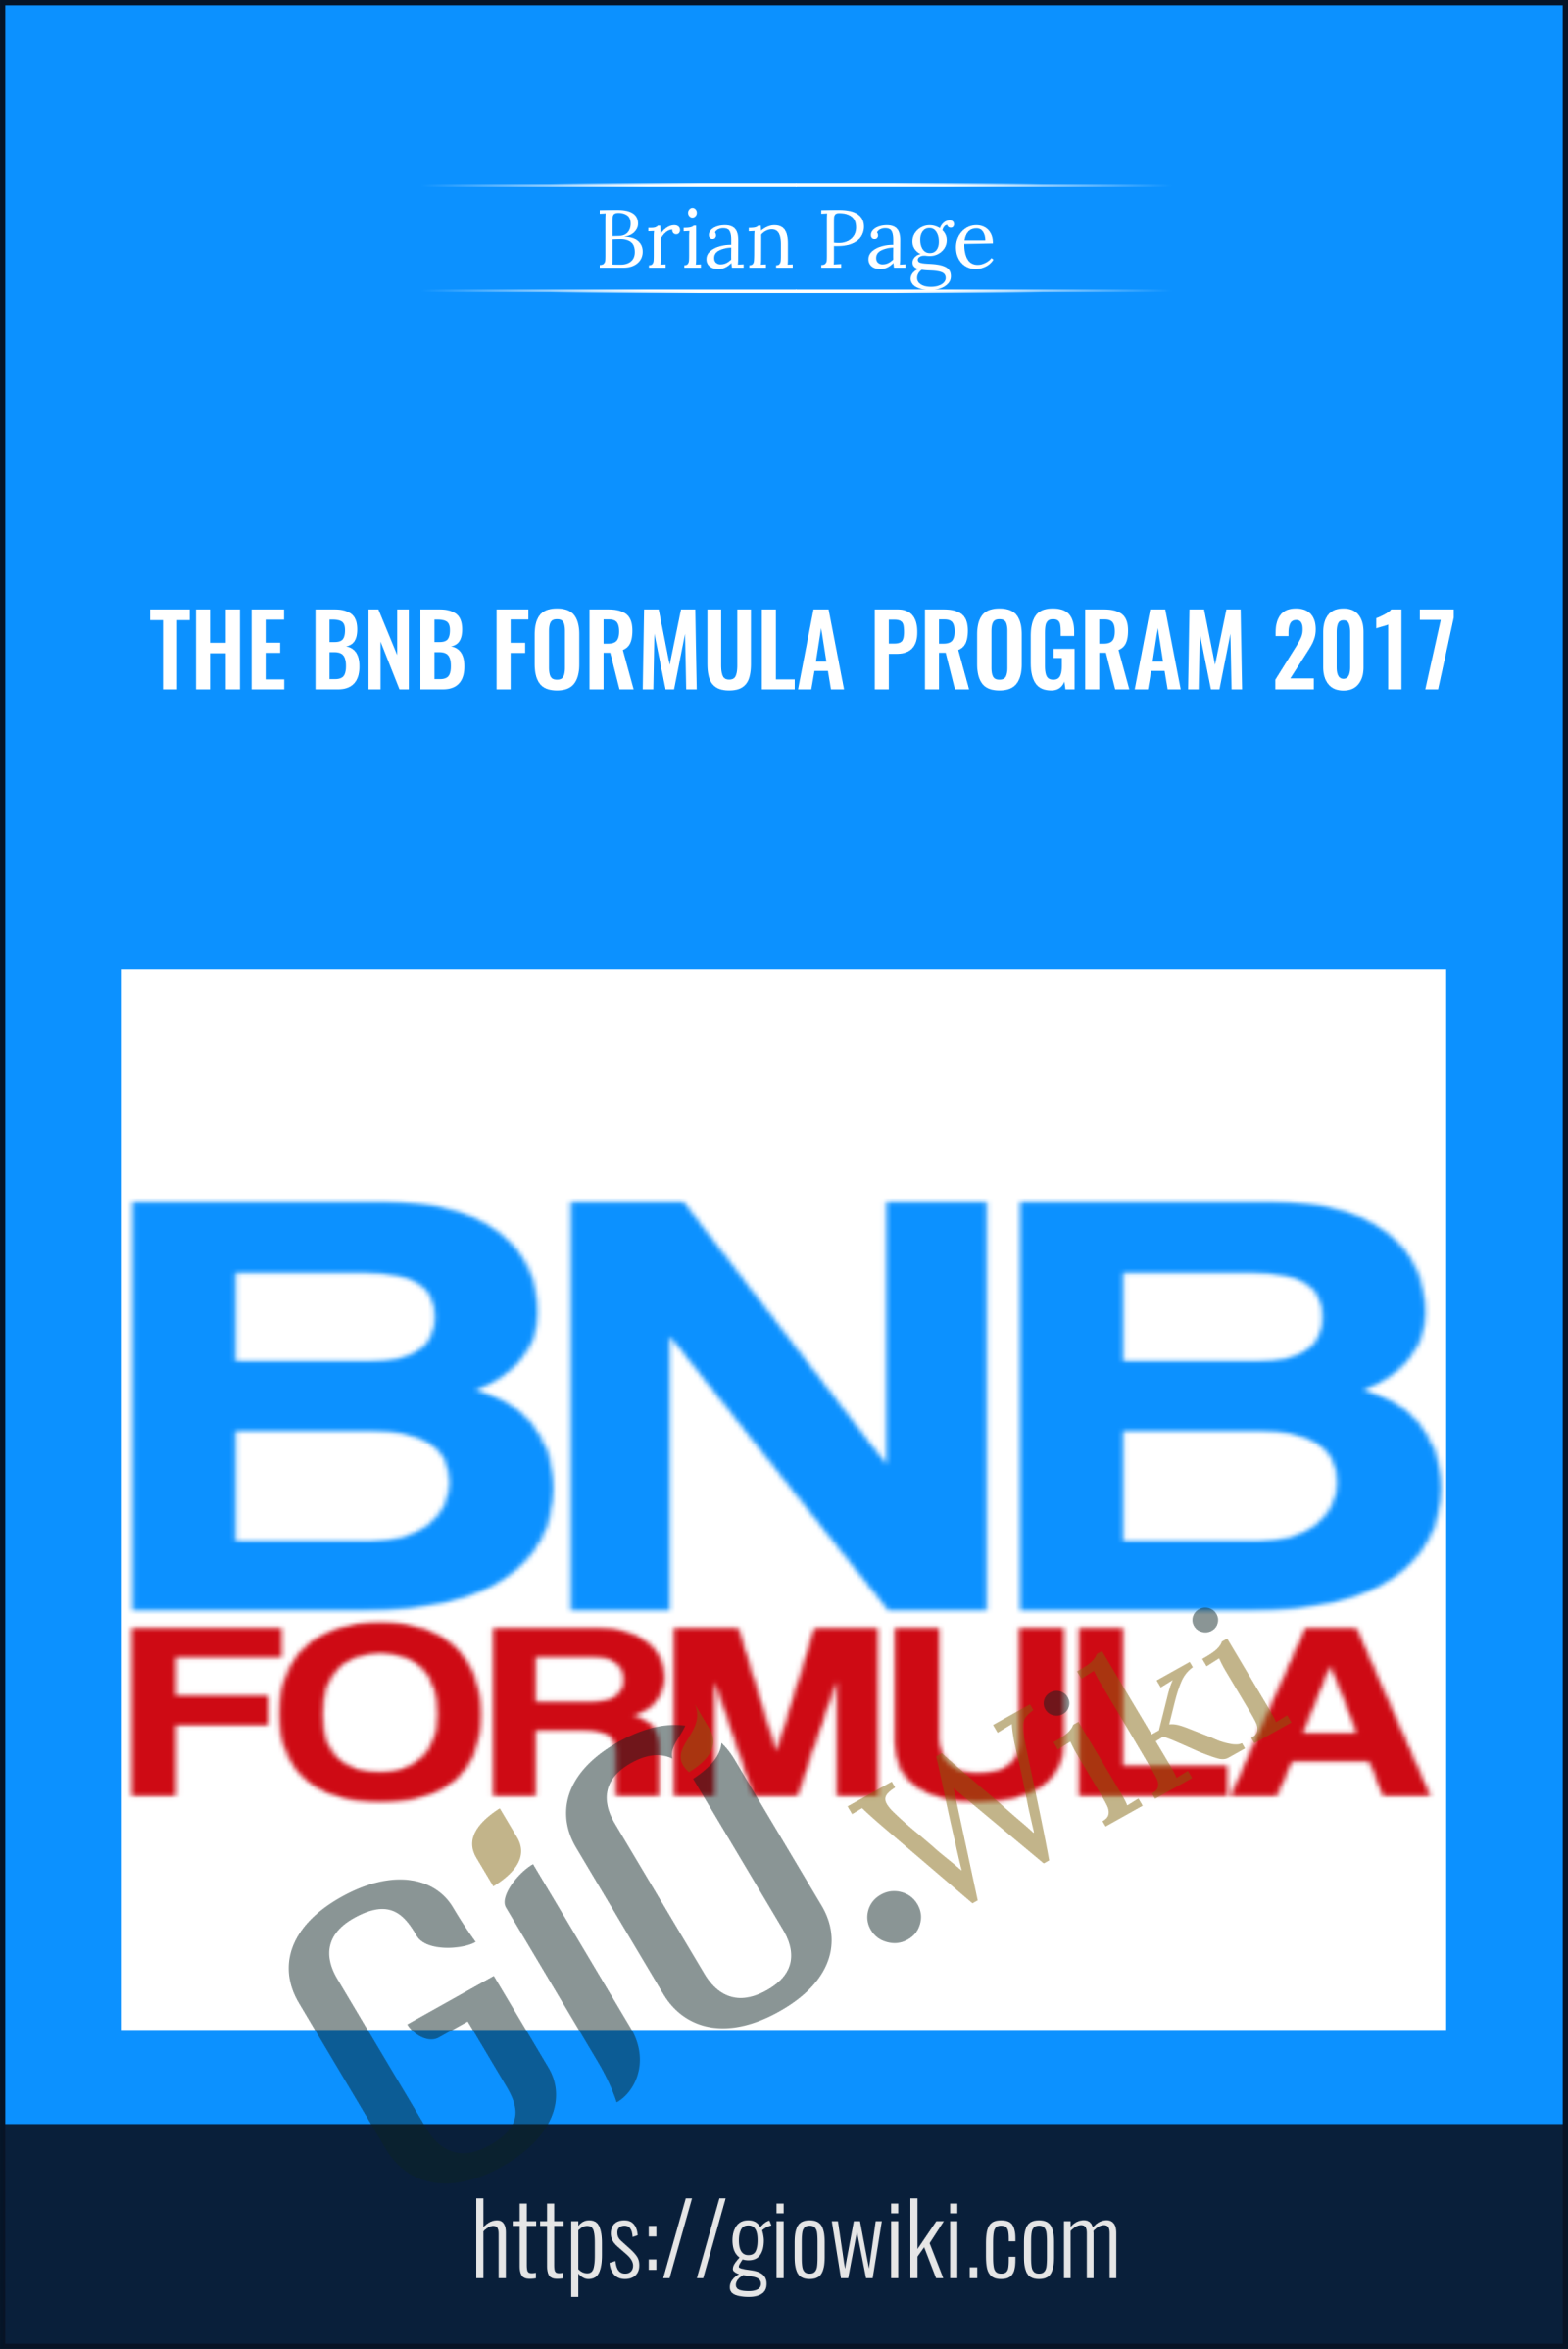 The BNB Formula Program 2017 - Brian Page